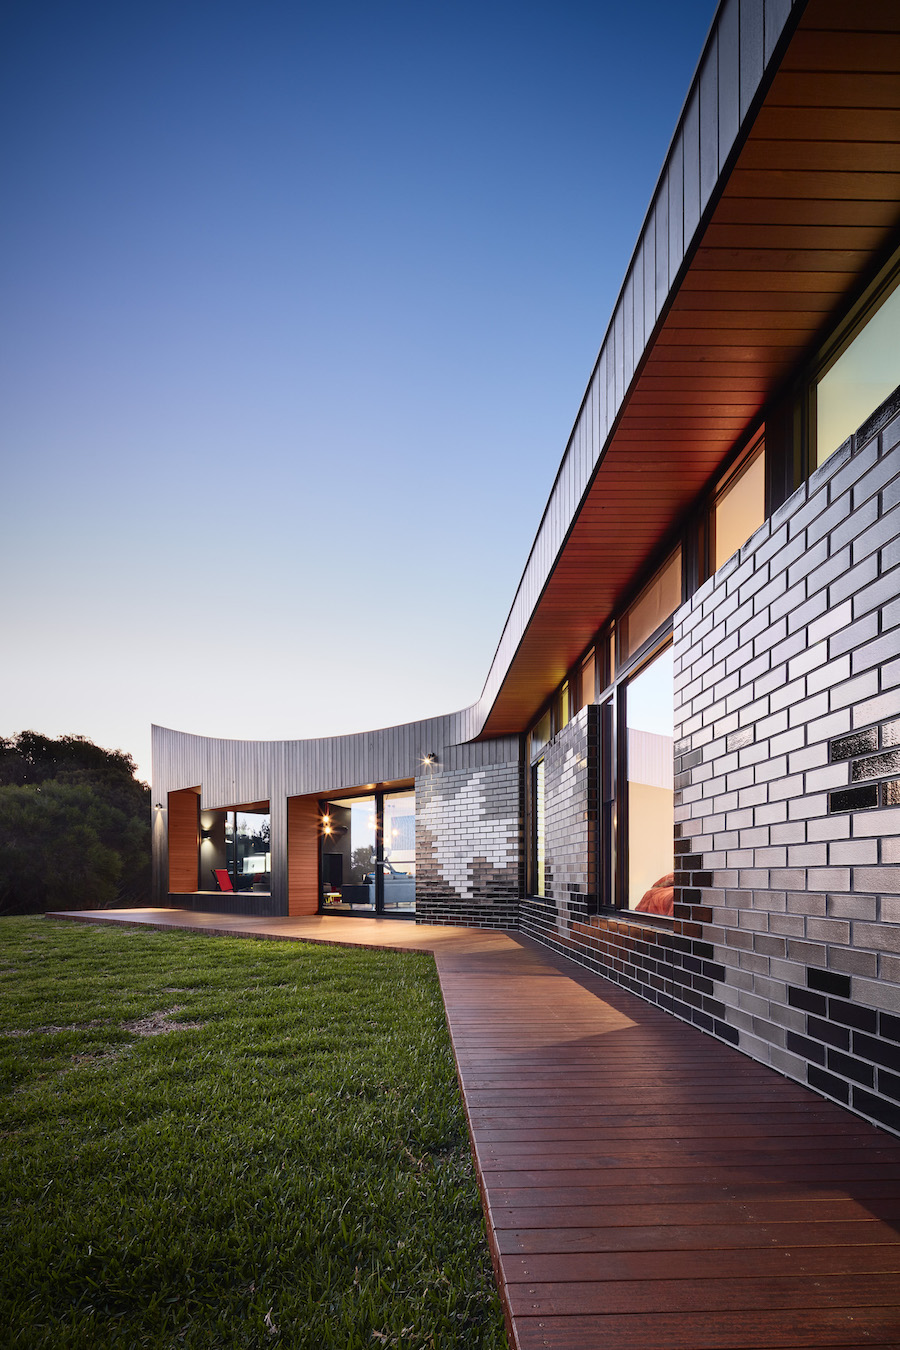 Hayne Wadley Architecture - Waratah Bay House - Architecture & Interior Archive - Image 1